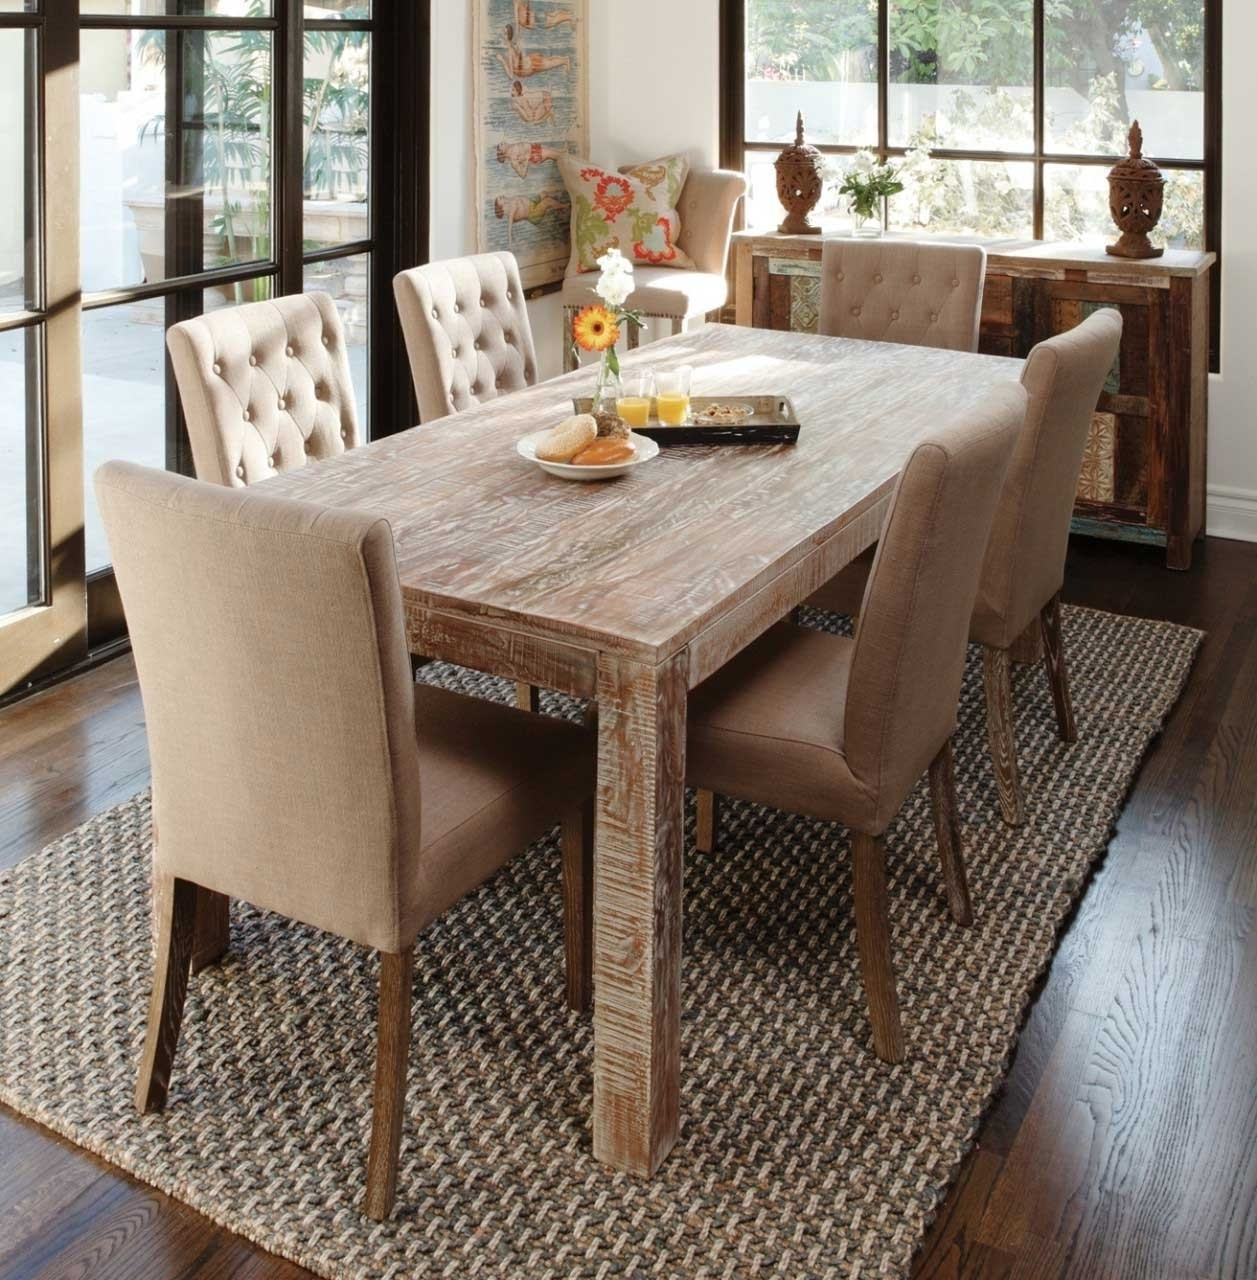 Rustic Dining Tables In 2018 Dining Room Country Rustic Dining Room Sets Rustic Round Kitchen (View 8 of 25)